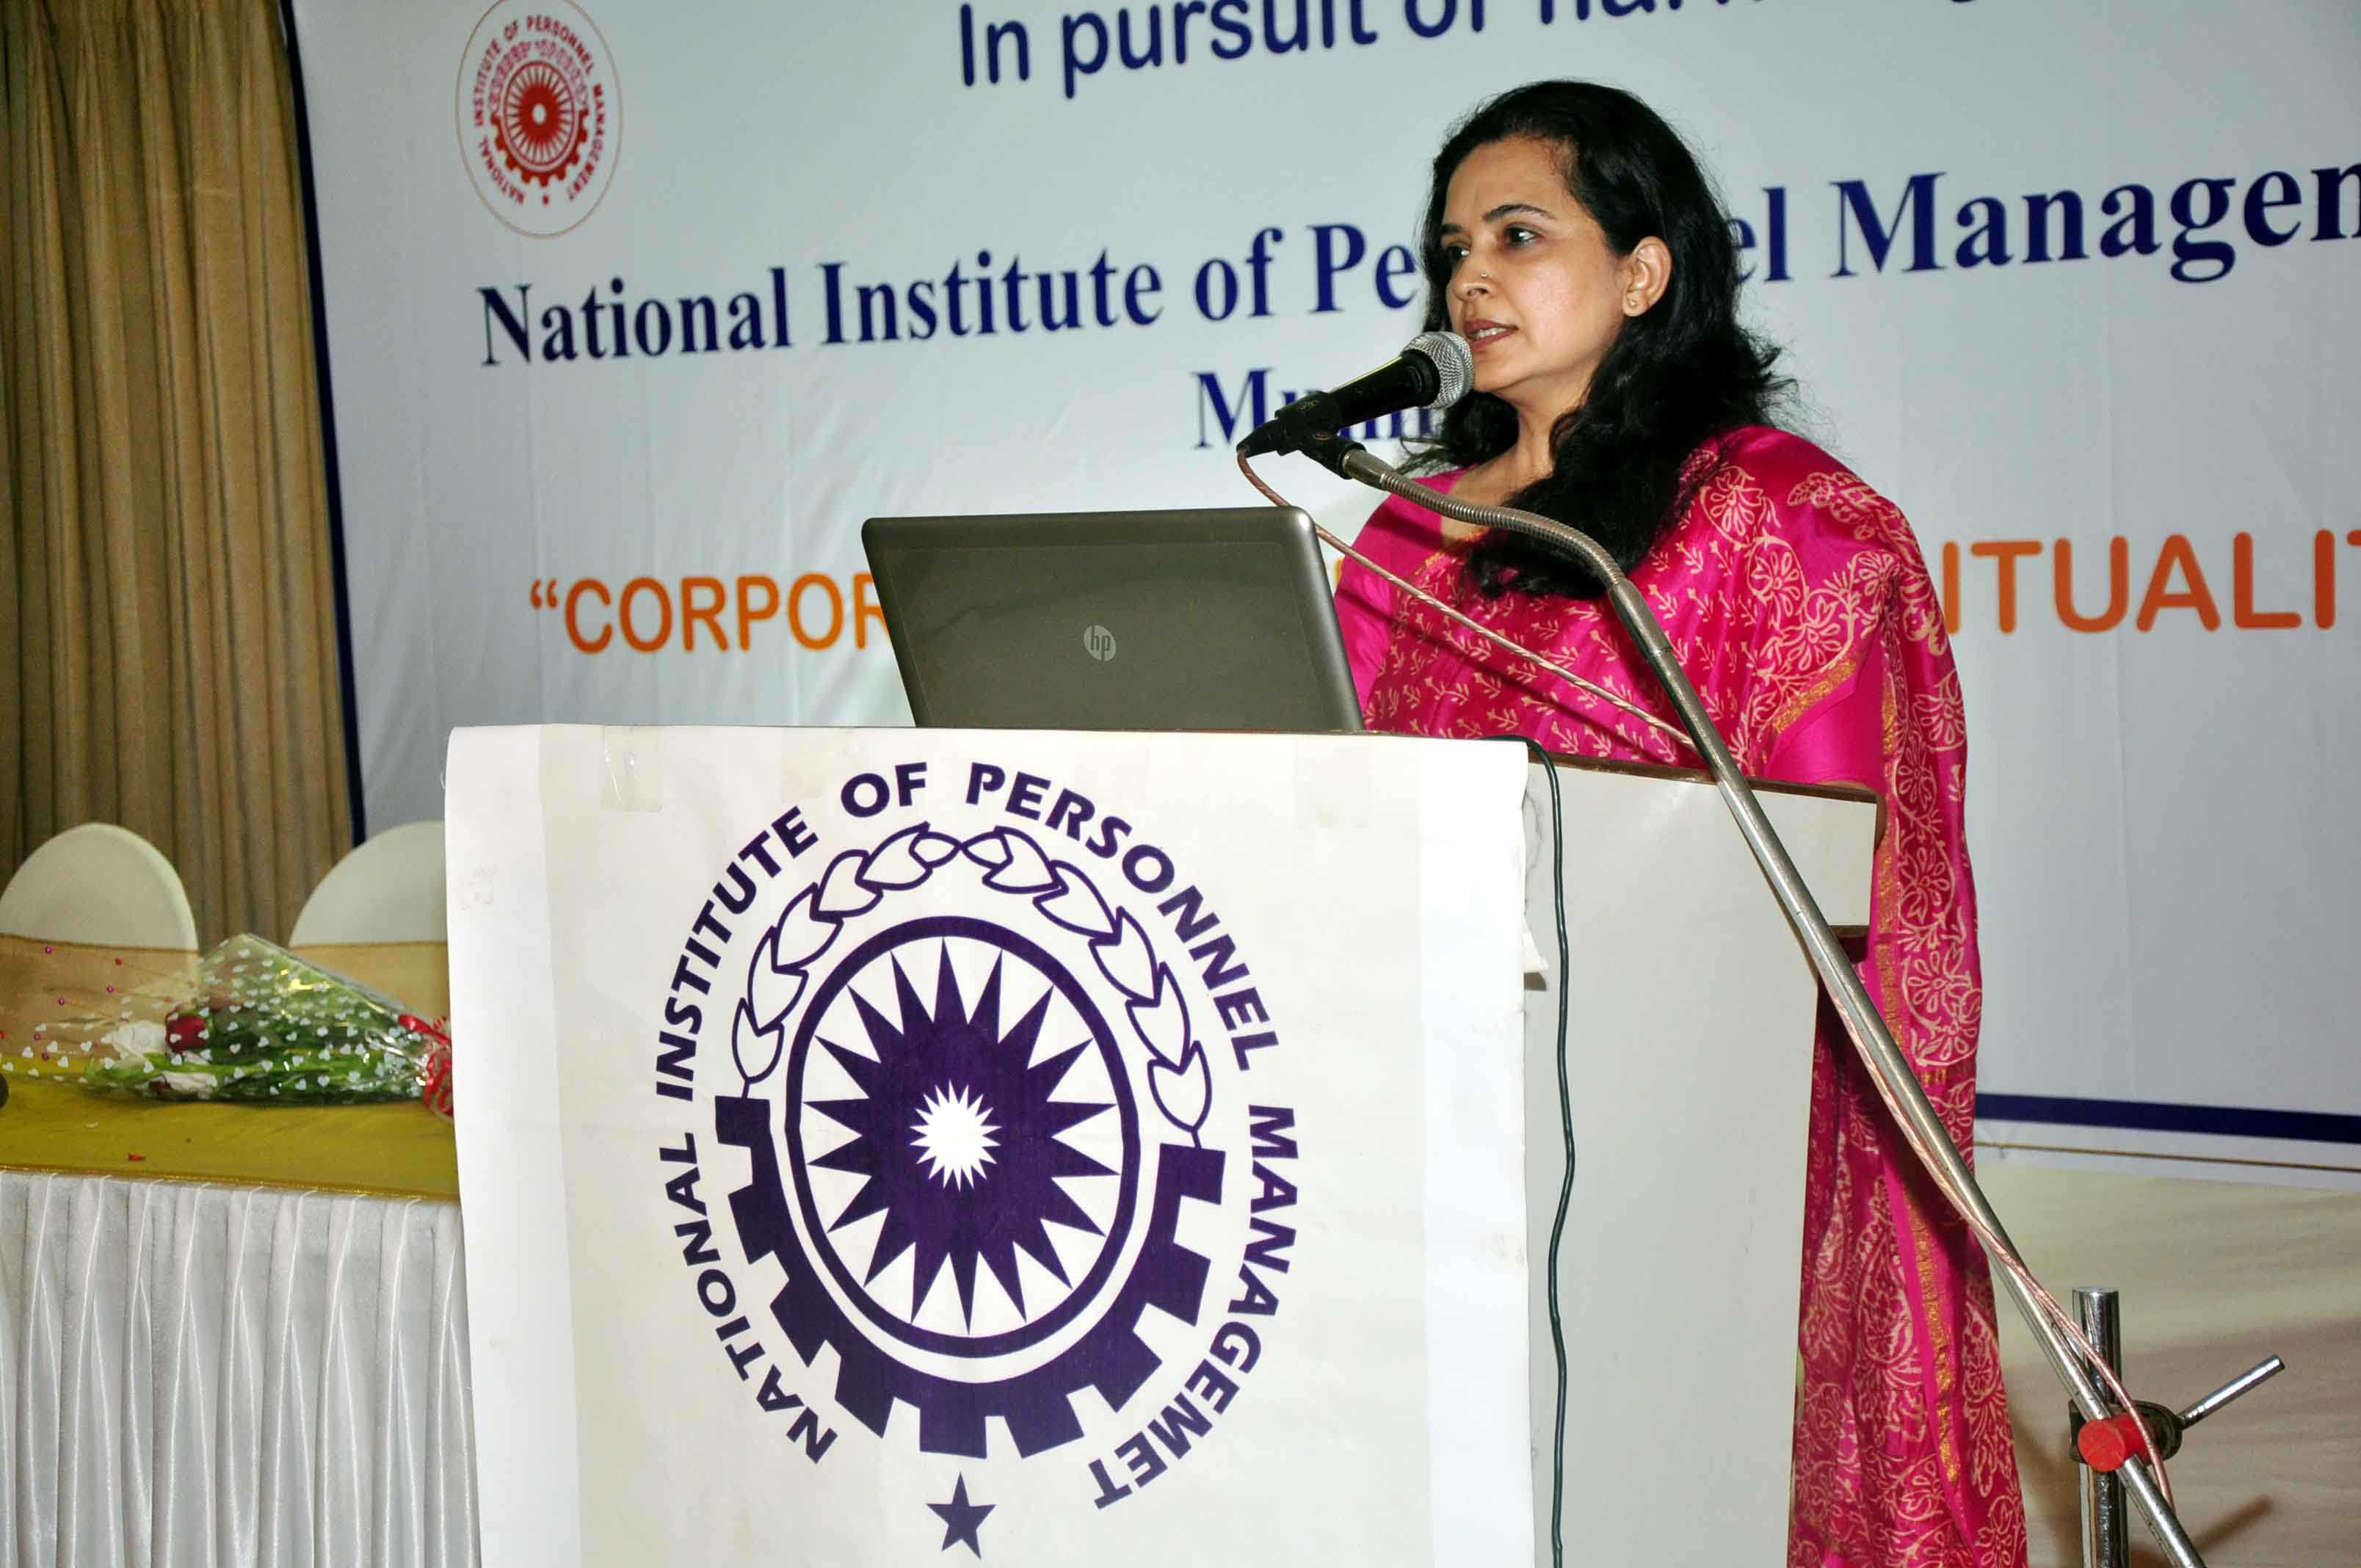 Distinguished speaker at NIPM Conference on Corporate Culture and Spirituality